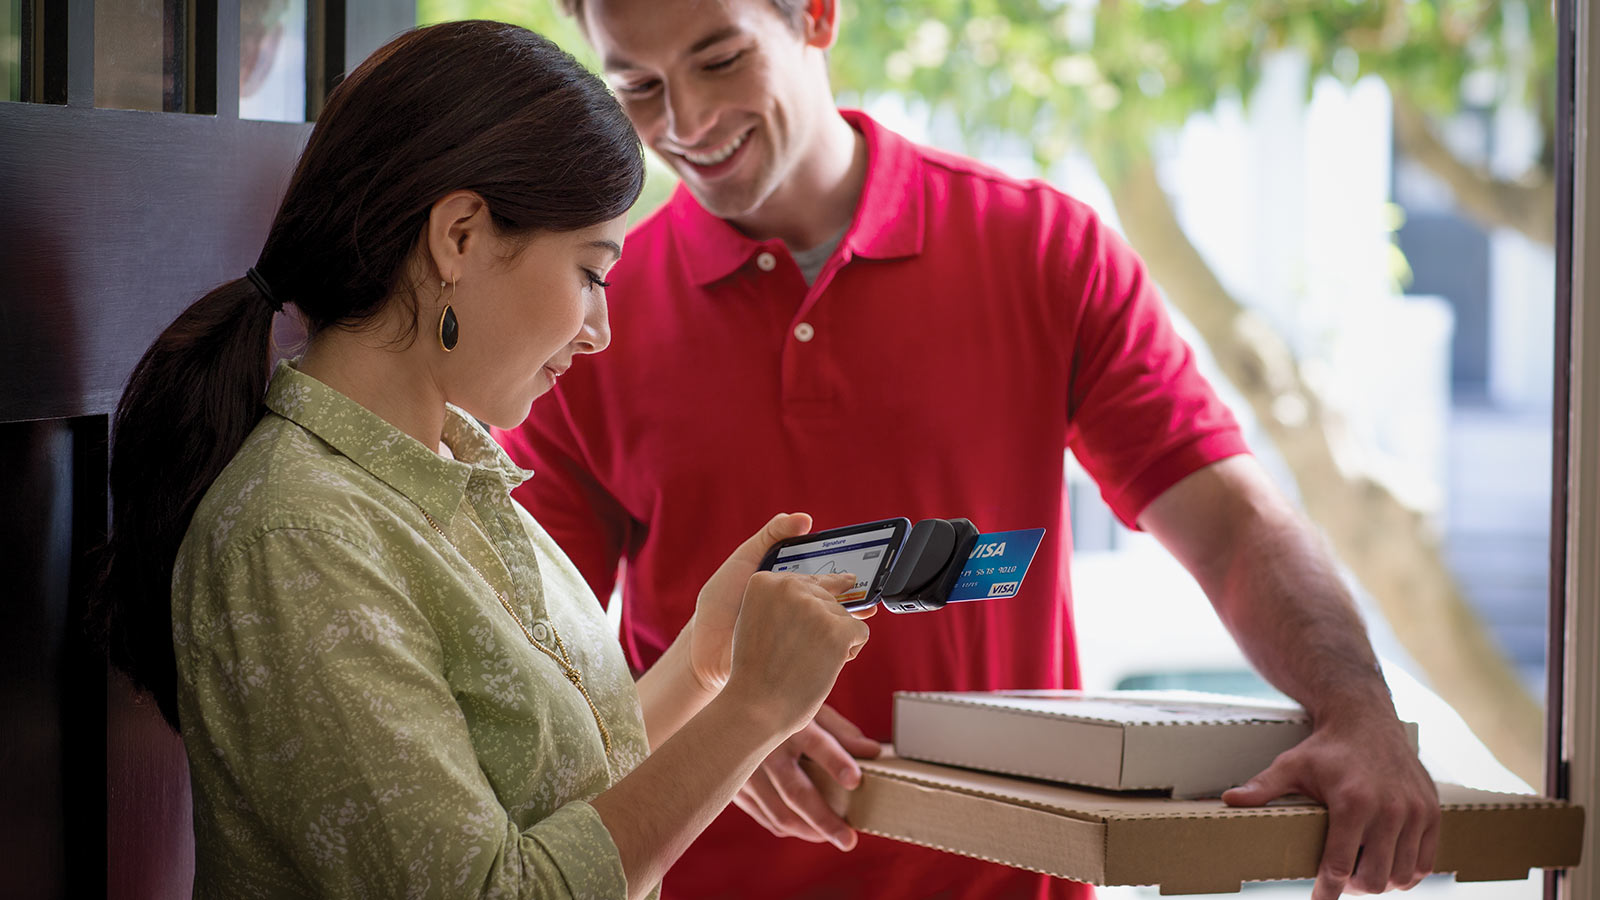 A pizza delivery person holding two pizza boxes as the customer is making a mobile payment.